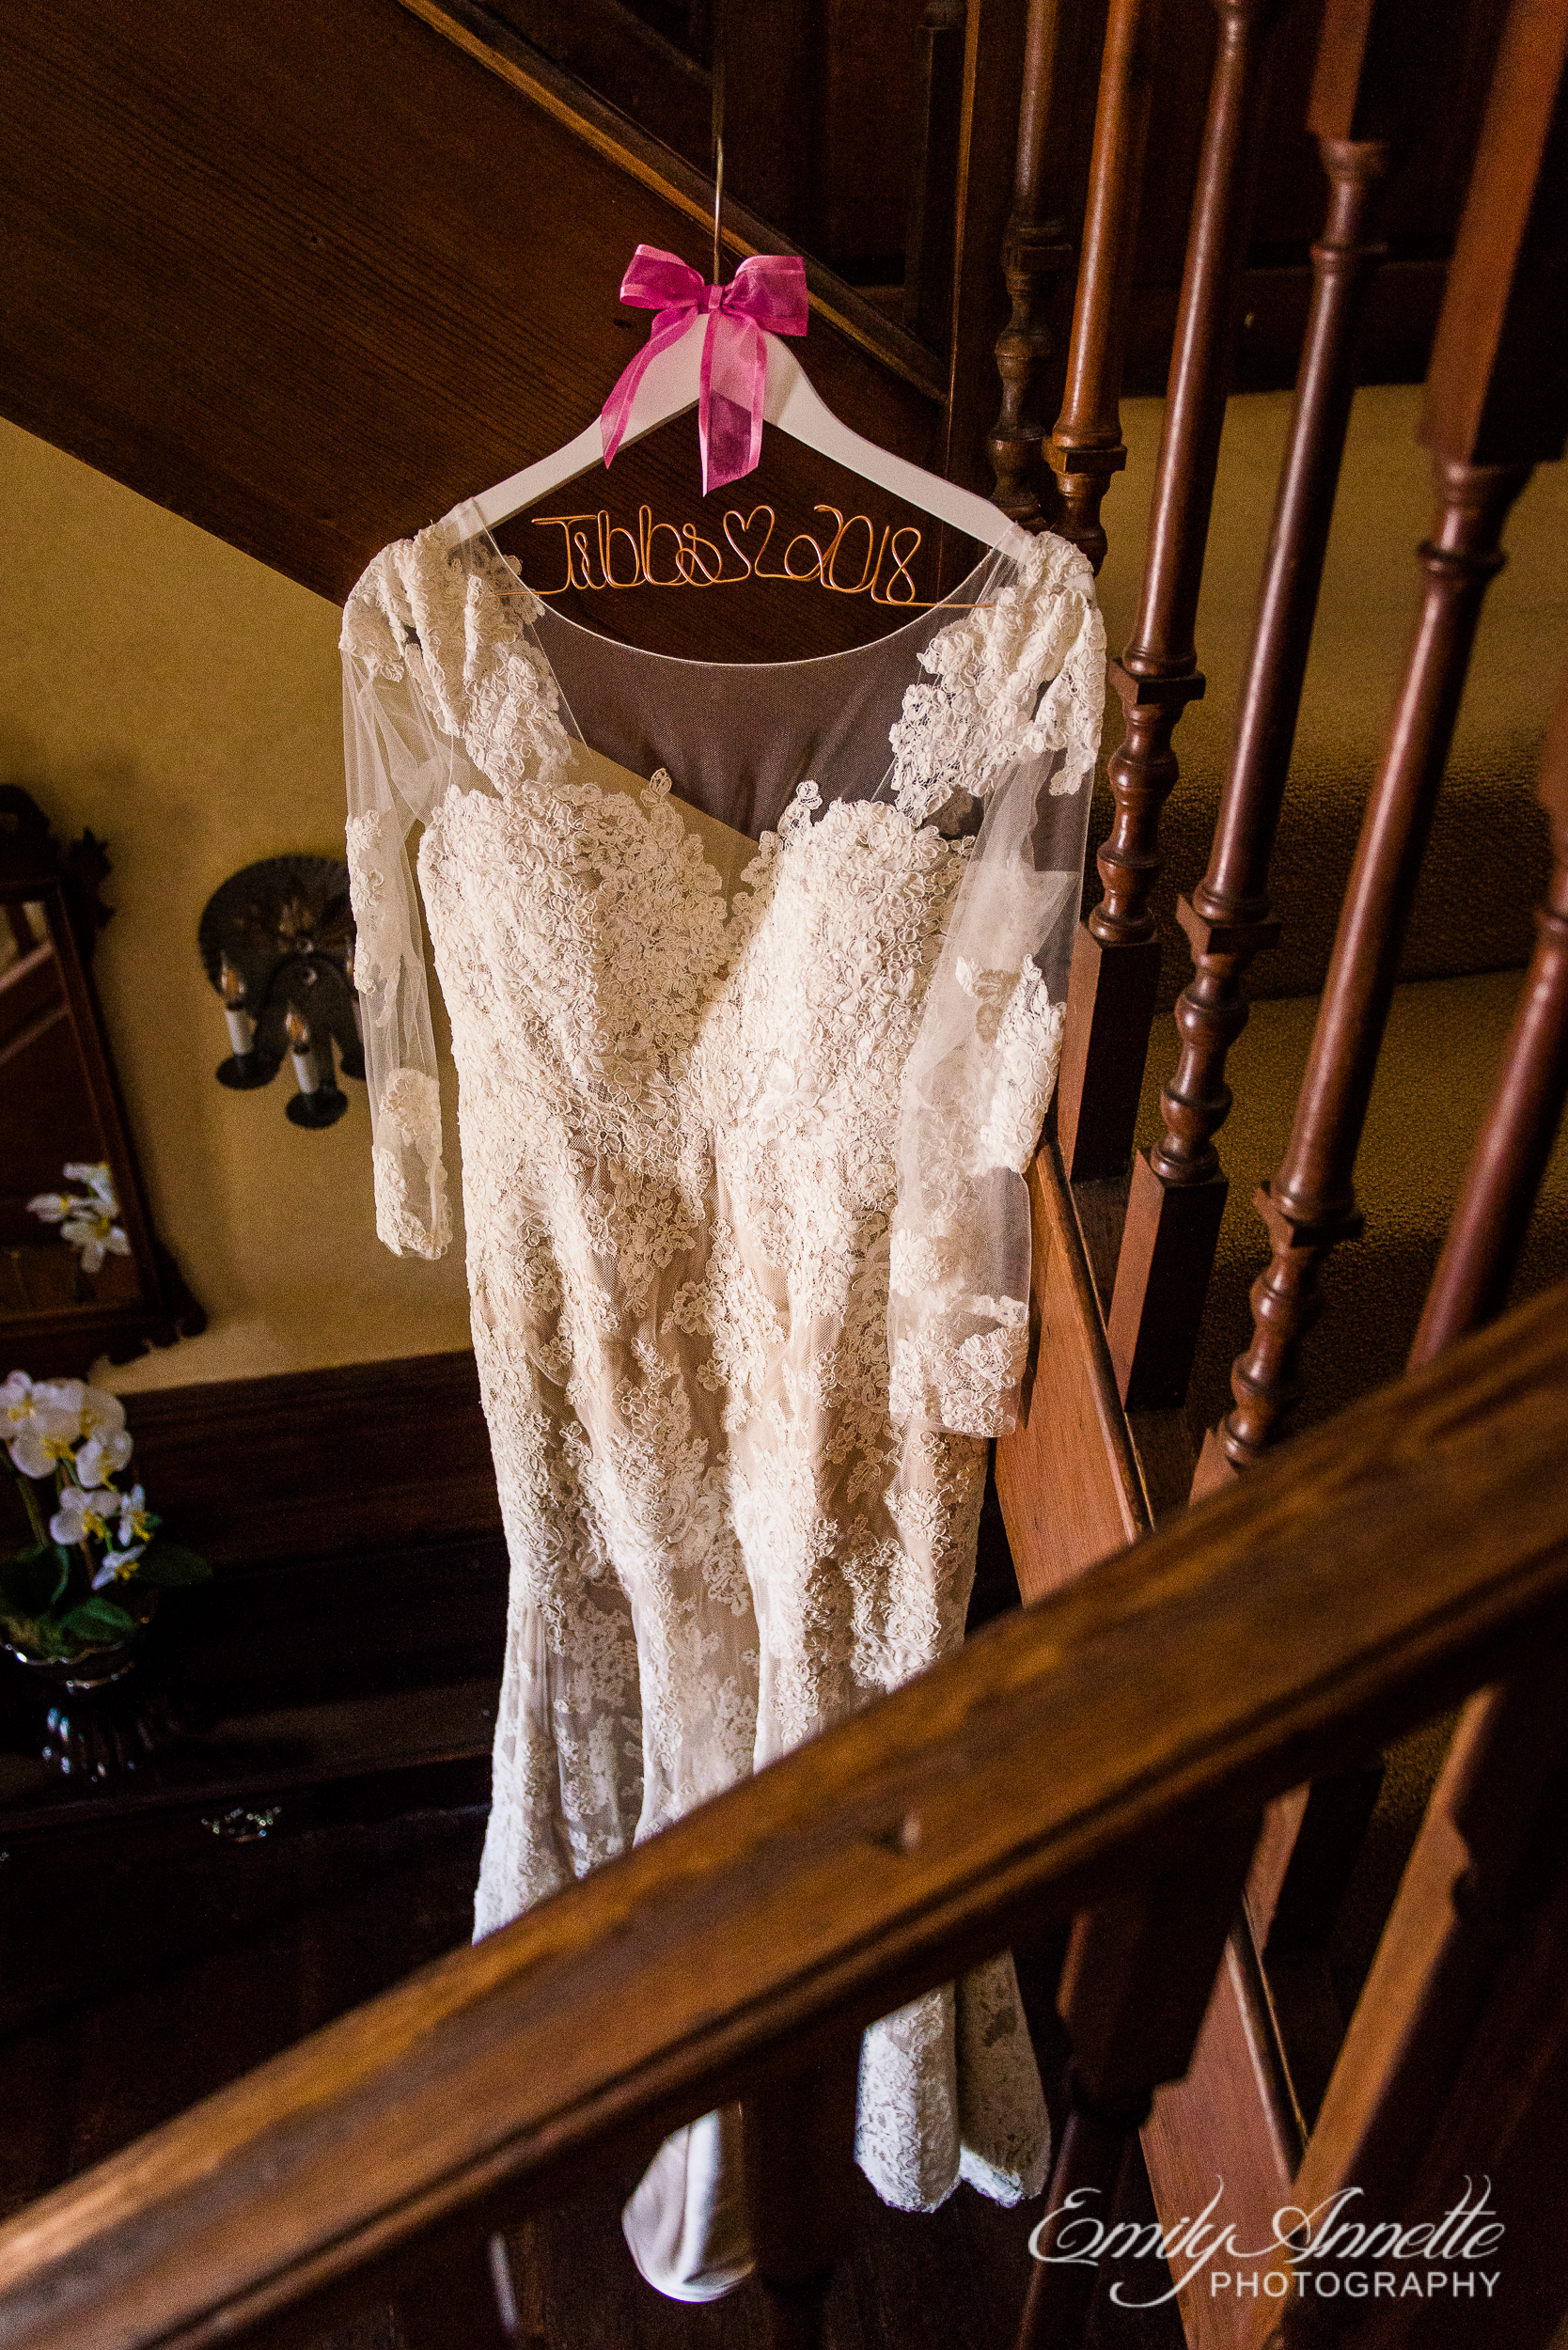 A lace wedding dress with sleeves hanging from the stairs while the bride is getting ready at Willow Oaks Country Club in Richmond, Virginia